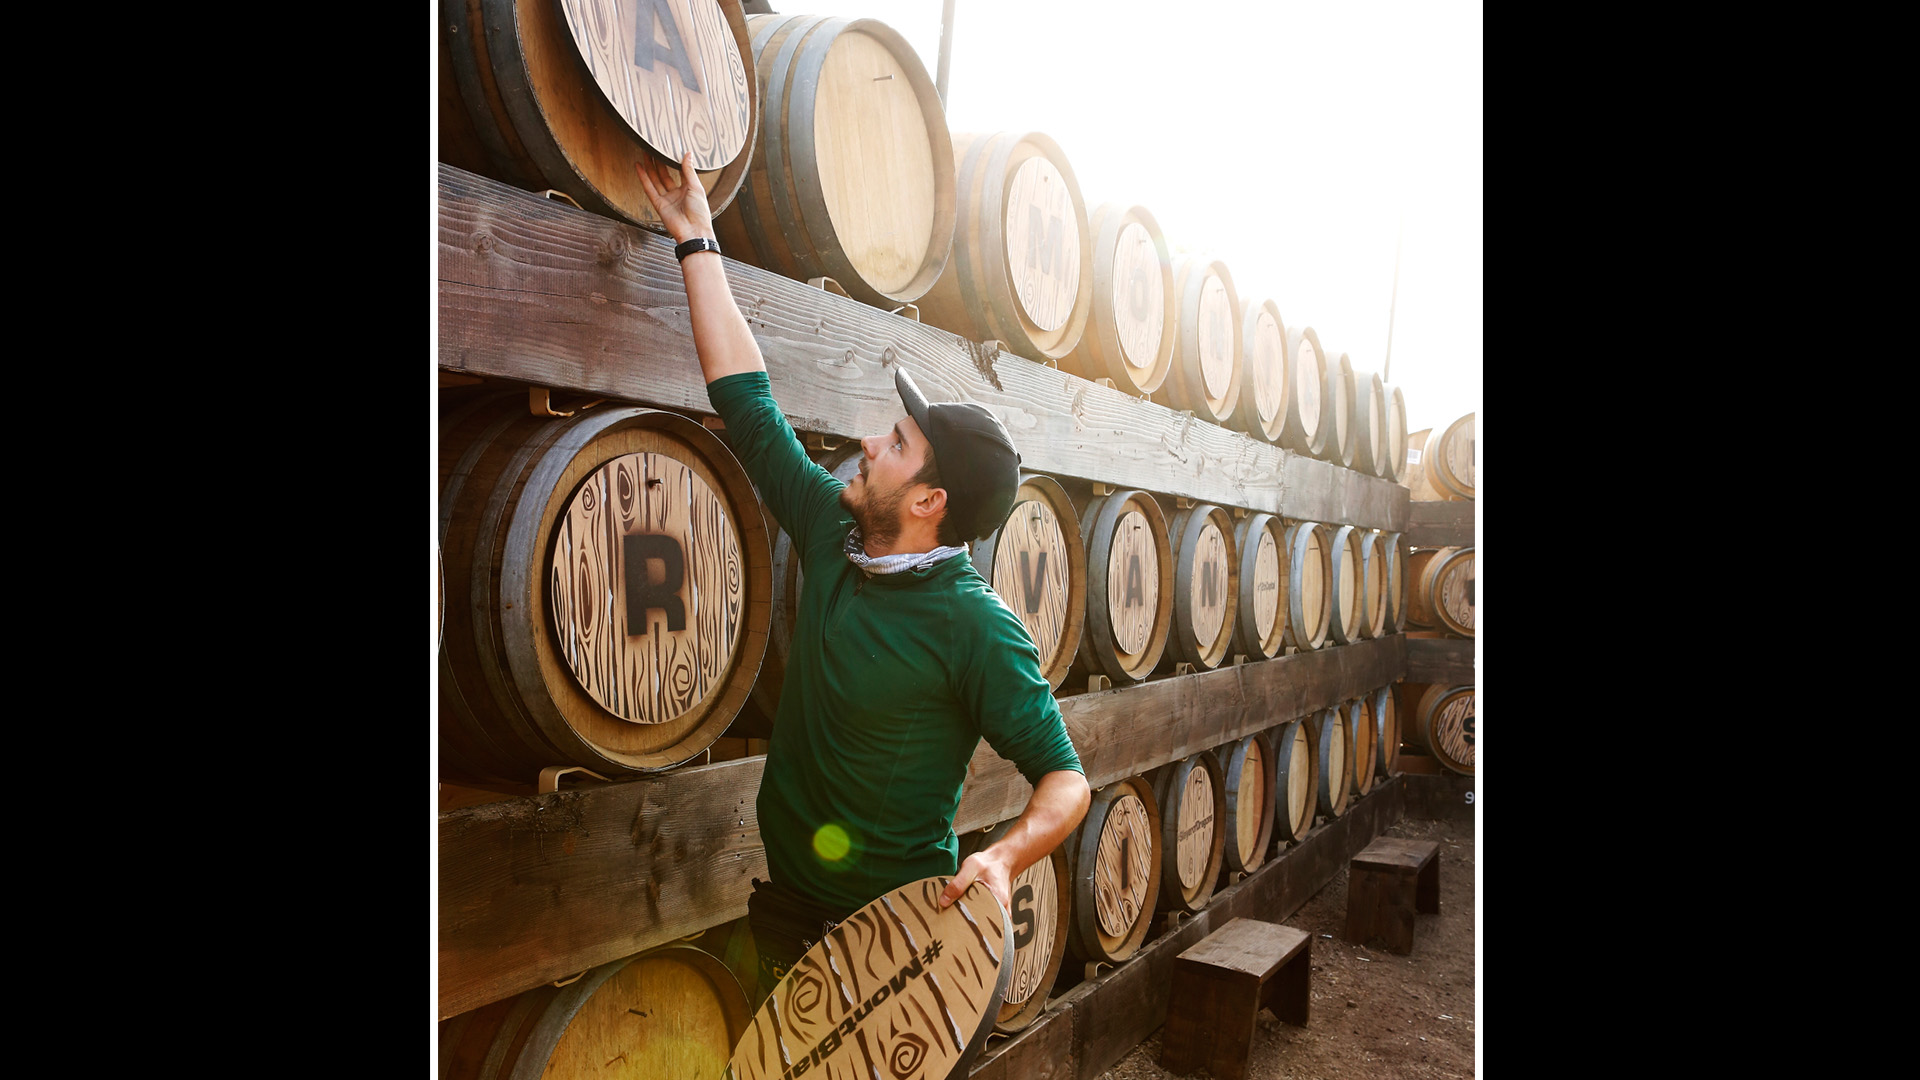 Korey grabs letters from the top of different wooden barrels.